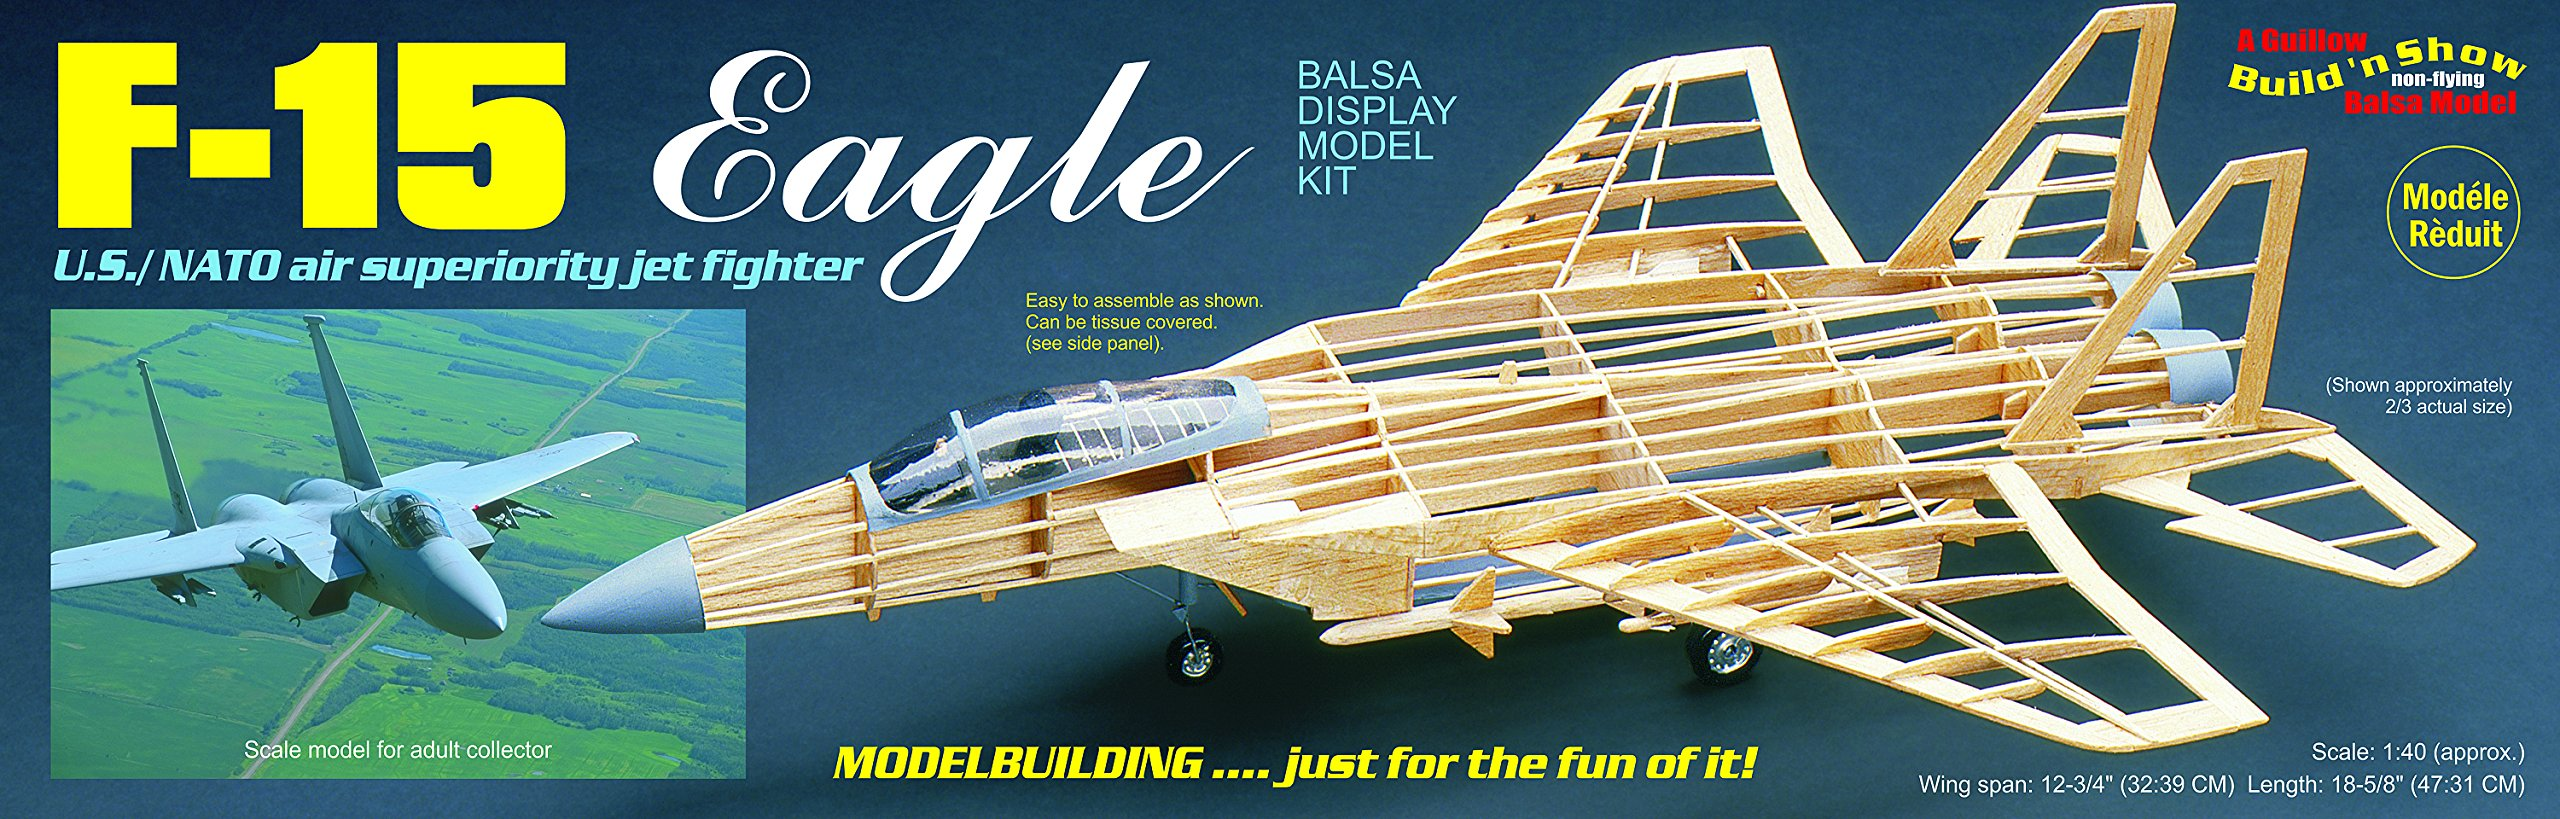 Guillow's F-15 Eagle Model Kit by Guillow